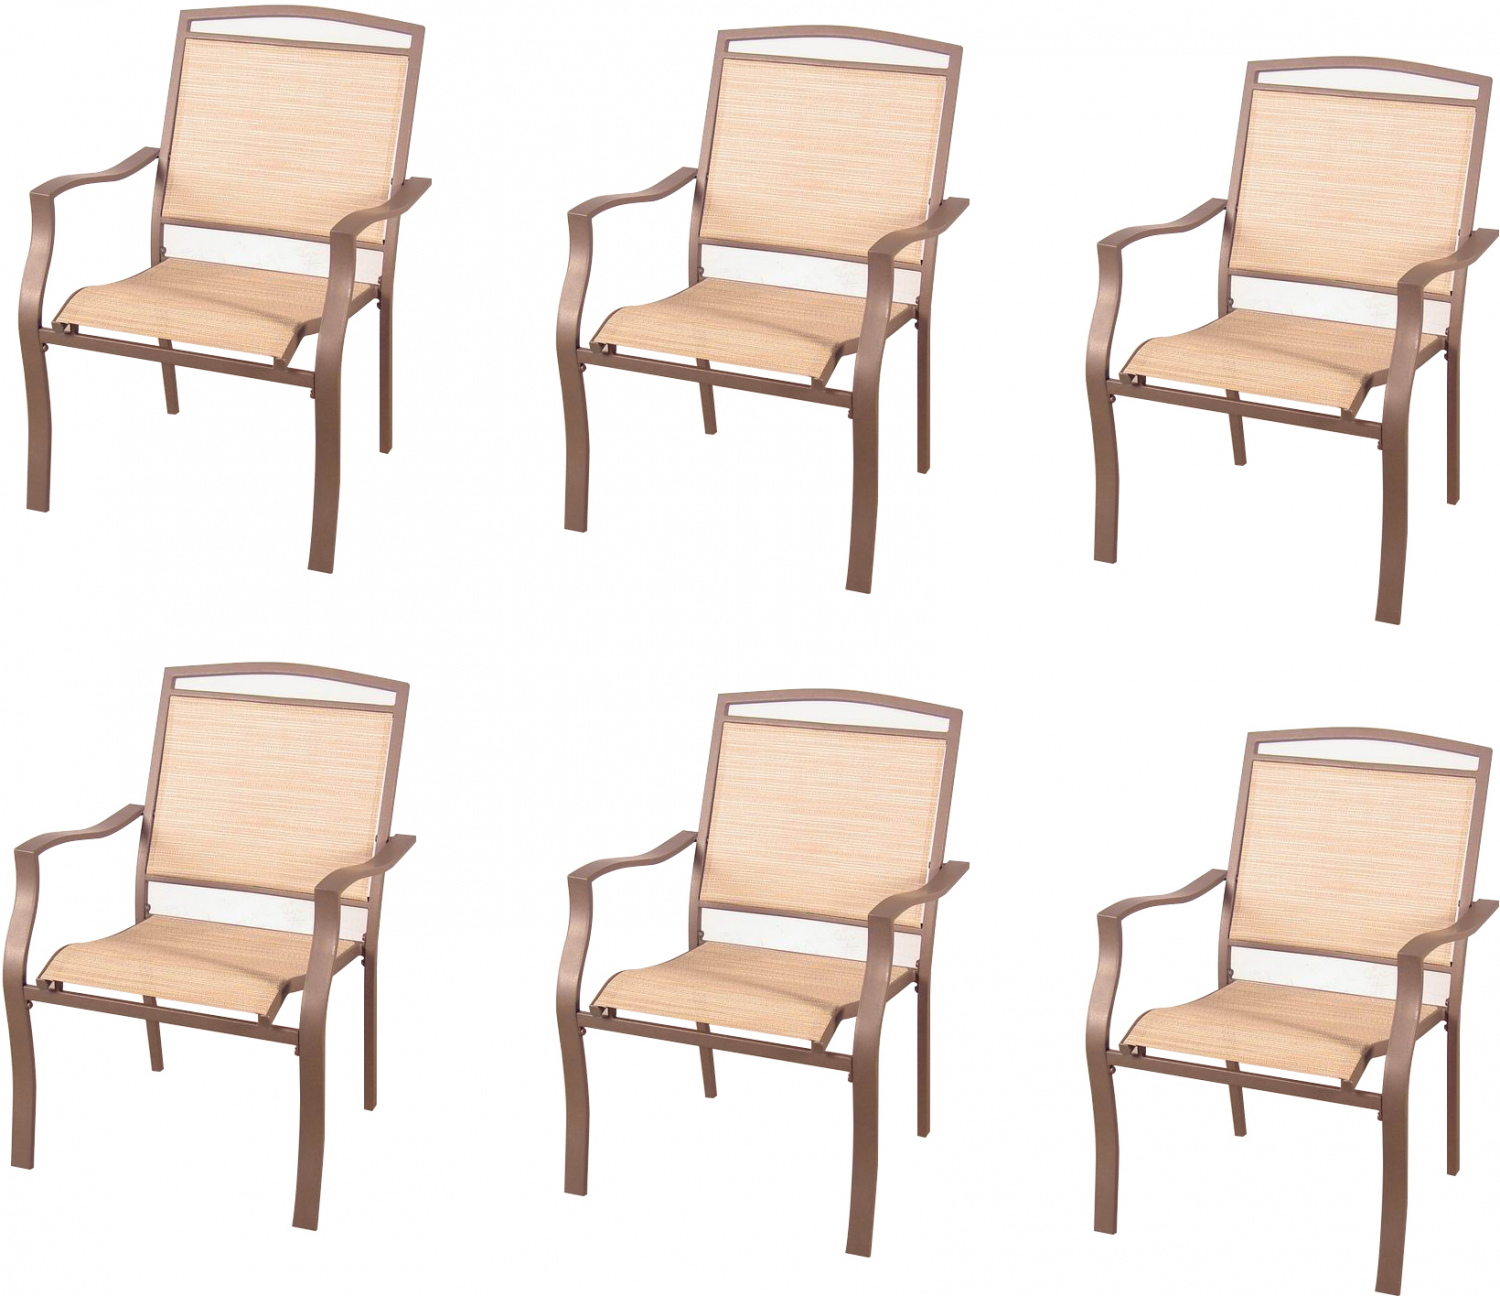 Strange Details About Mainstays Sand Dune Dining Chairs Set Of 6 Gamerscity Chair Design For Home Gamerscityorg